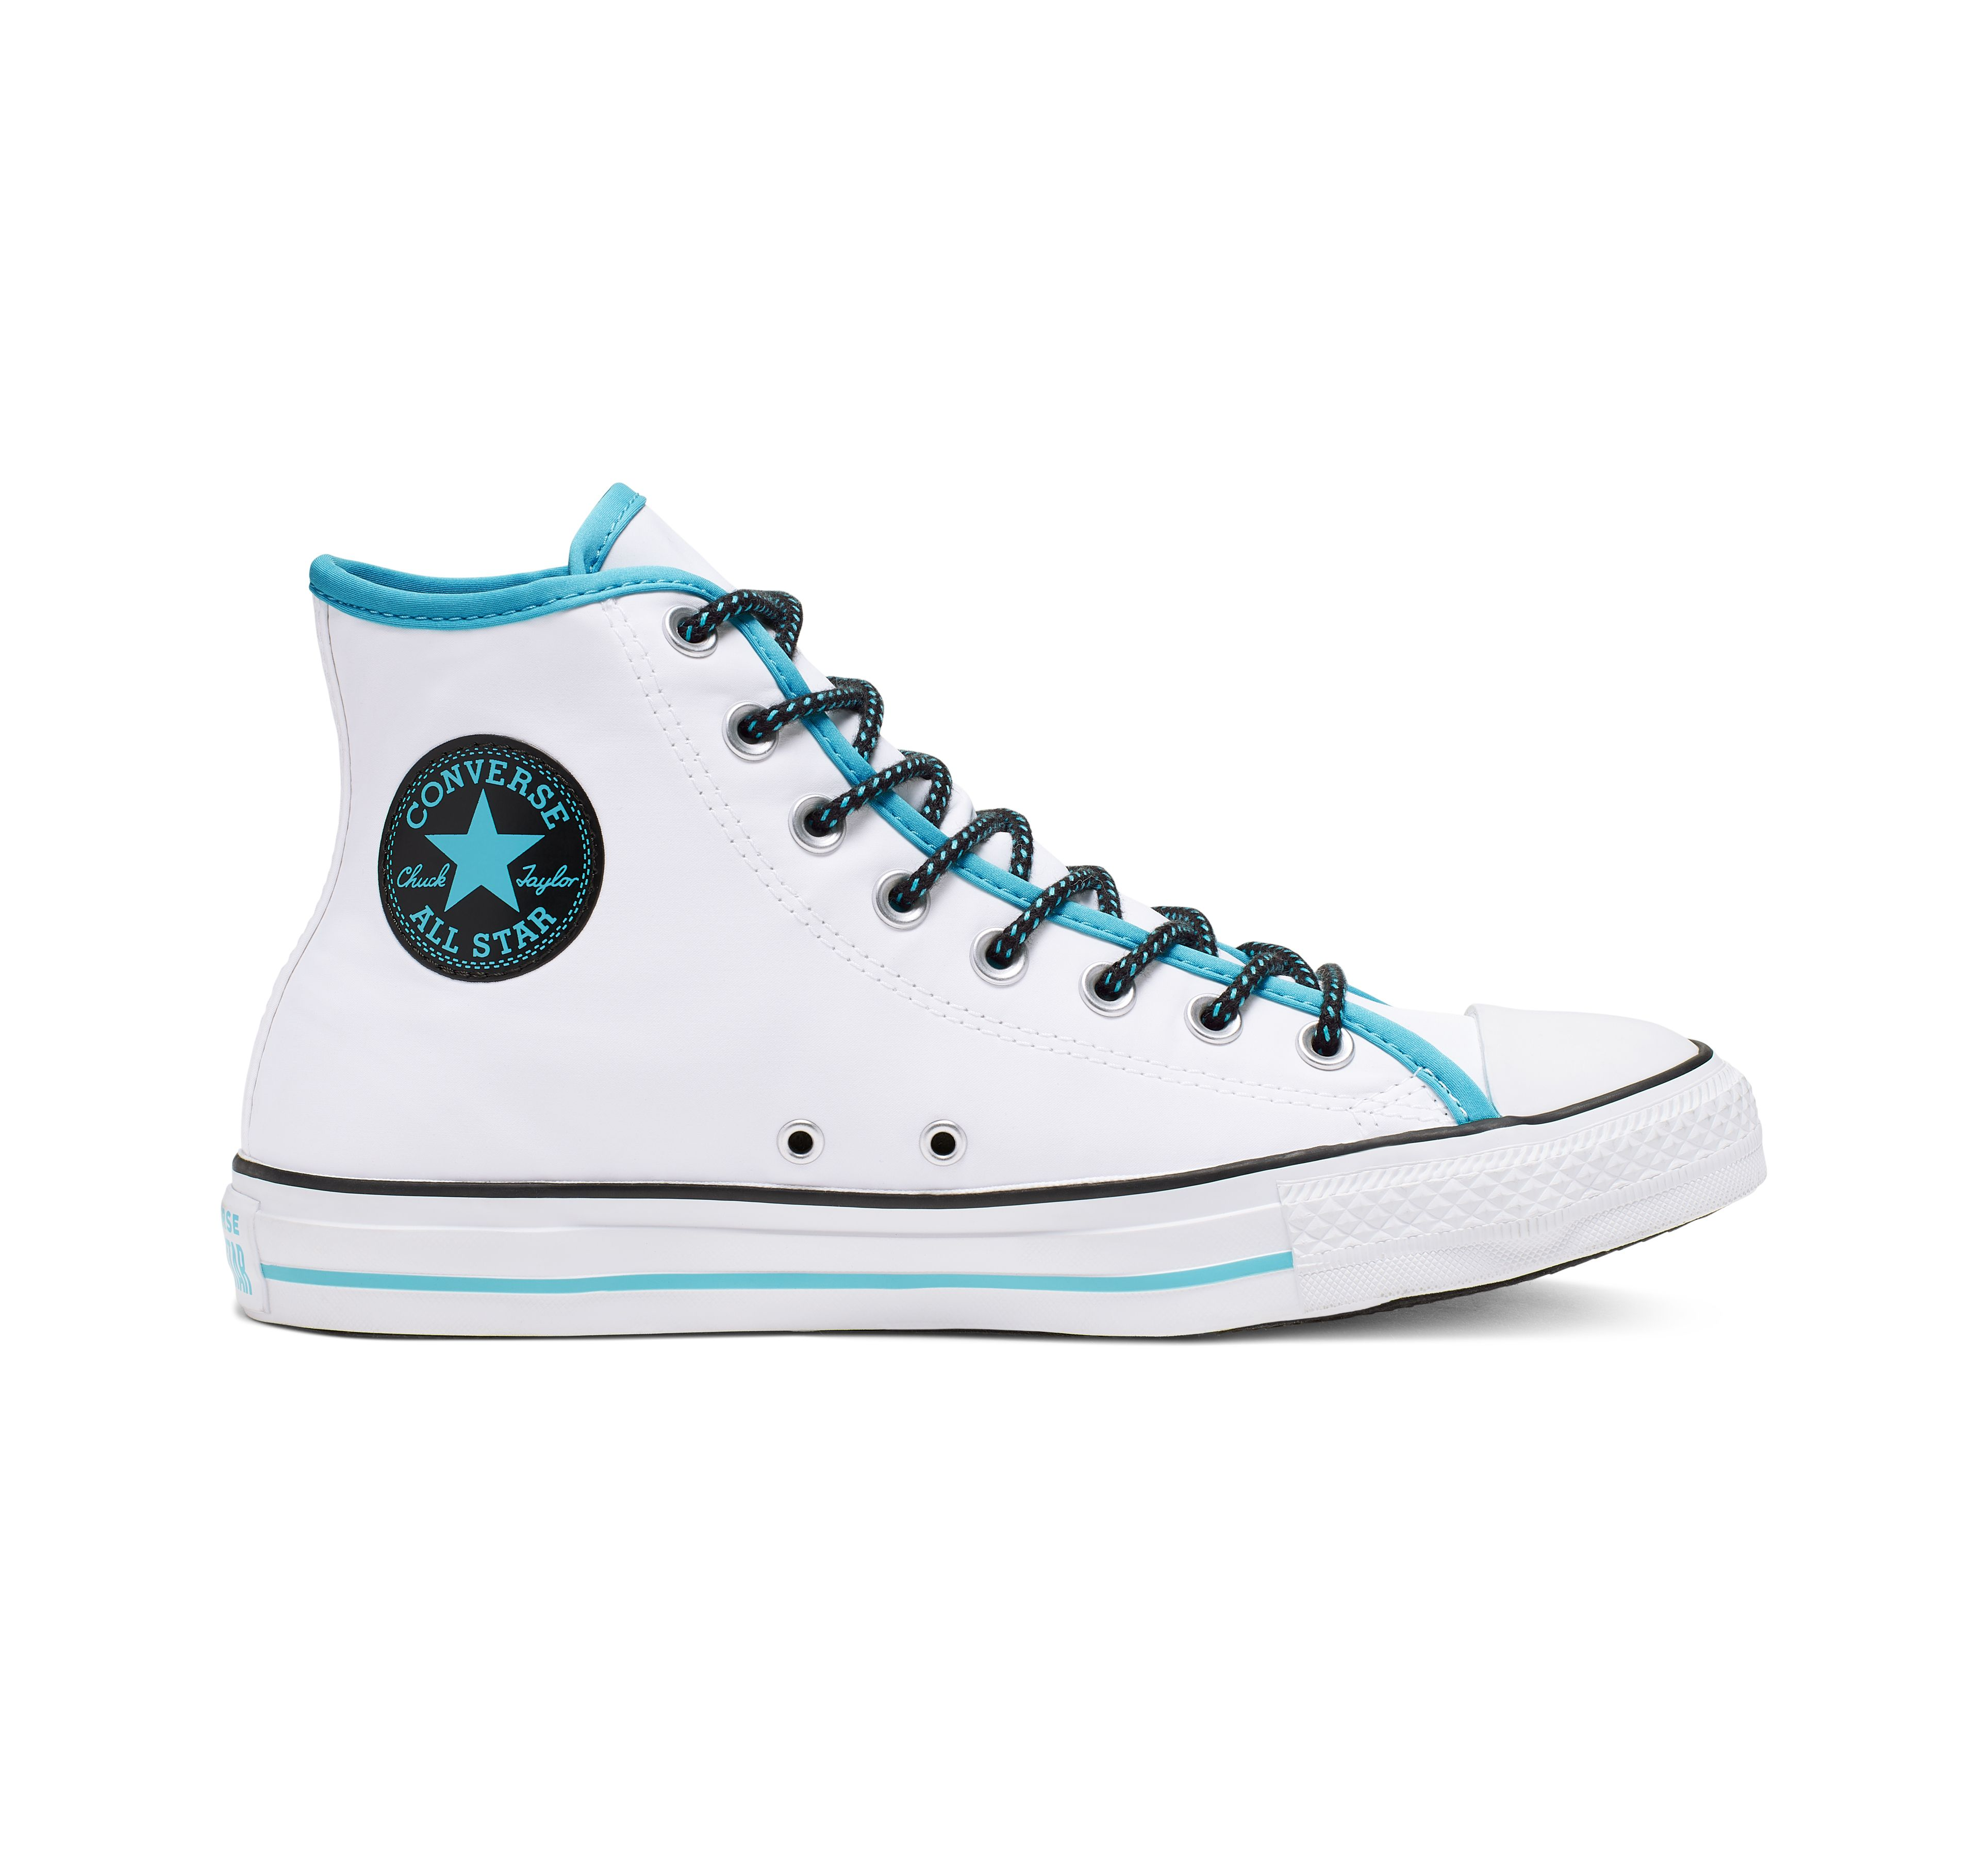 Chuck Taylor All Star Get Tubed High